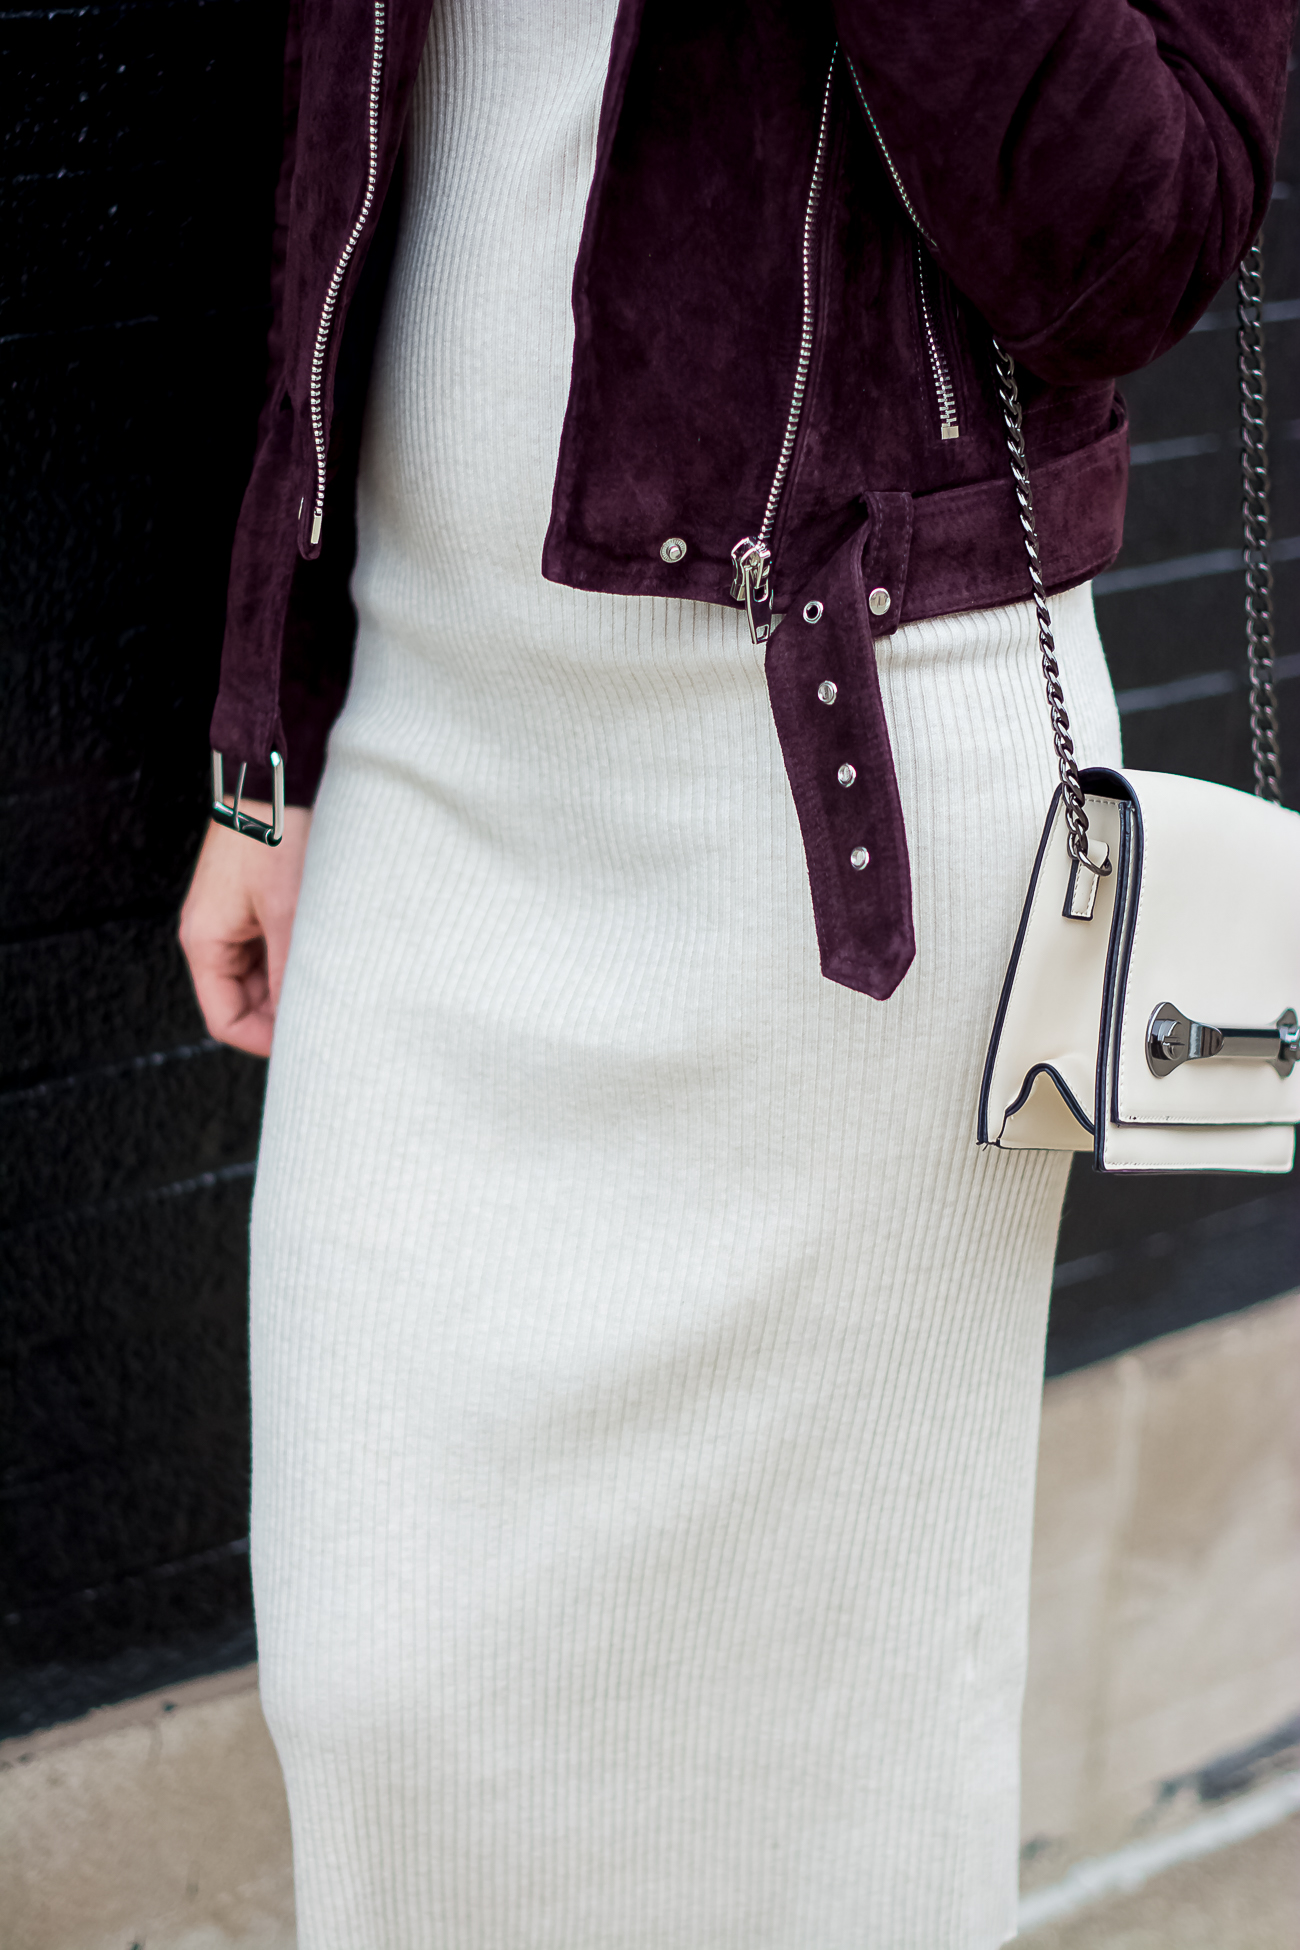 blank nyc burgundy suede moto jacket, forever 21 off white crossbody with metal hardware